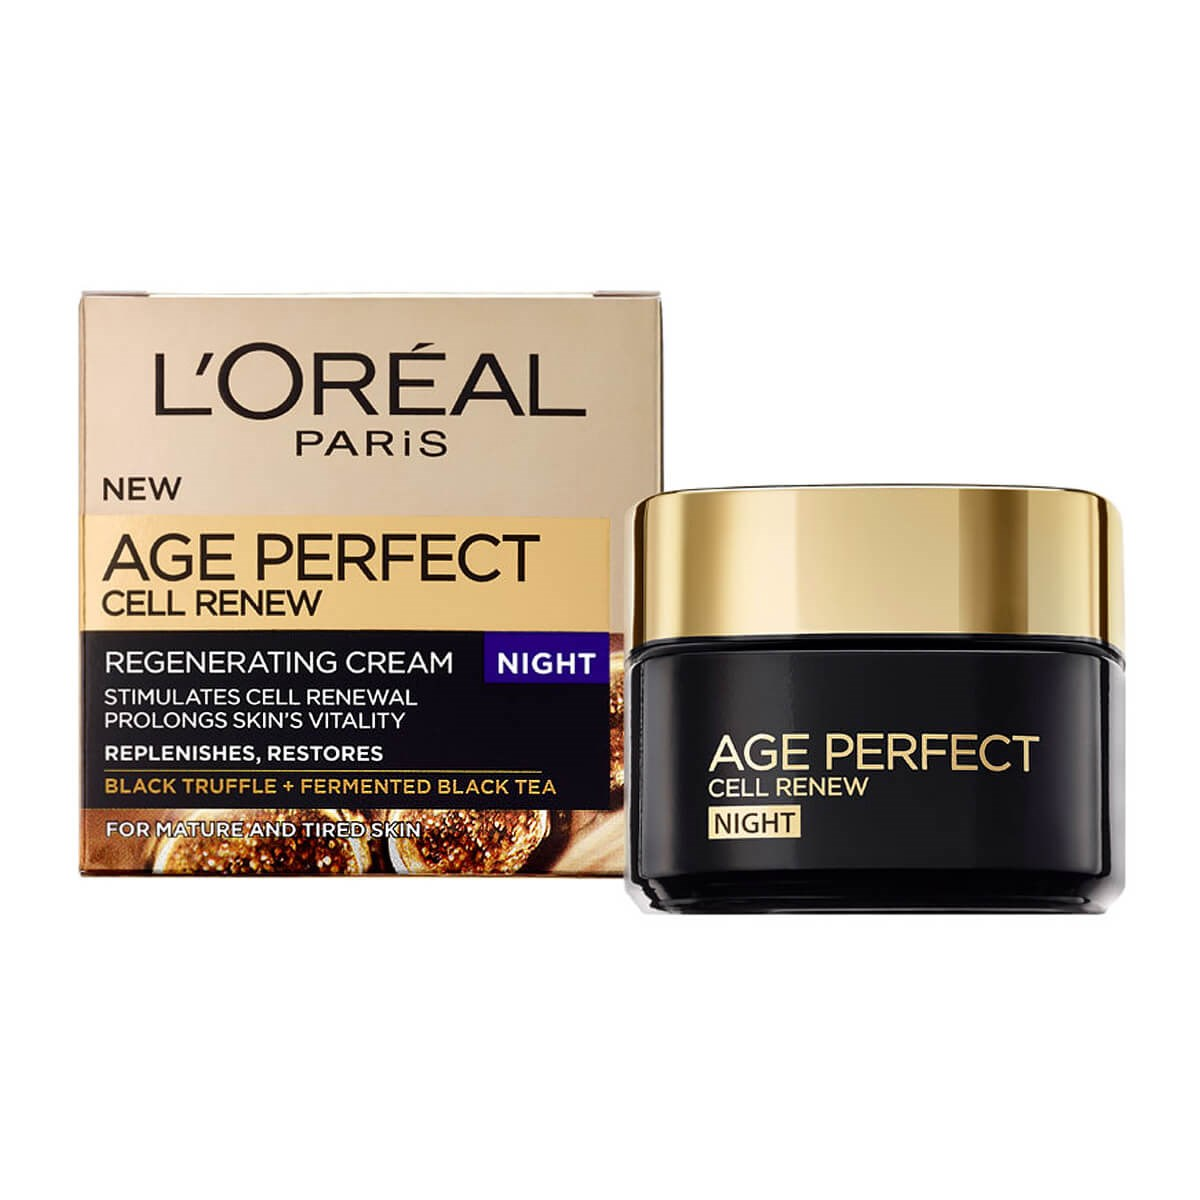 L'Oreal Paris Age Perfect Cell Renew Advanced Restoring Night Cream